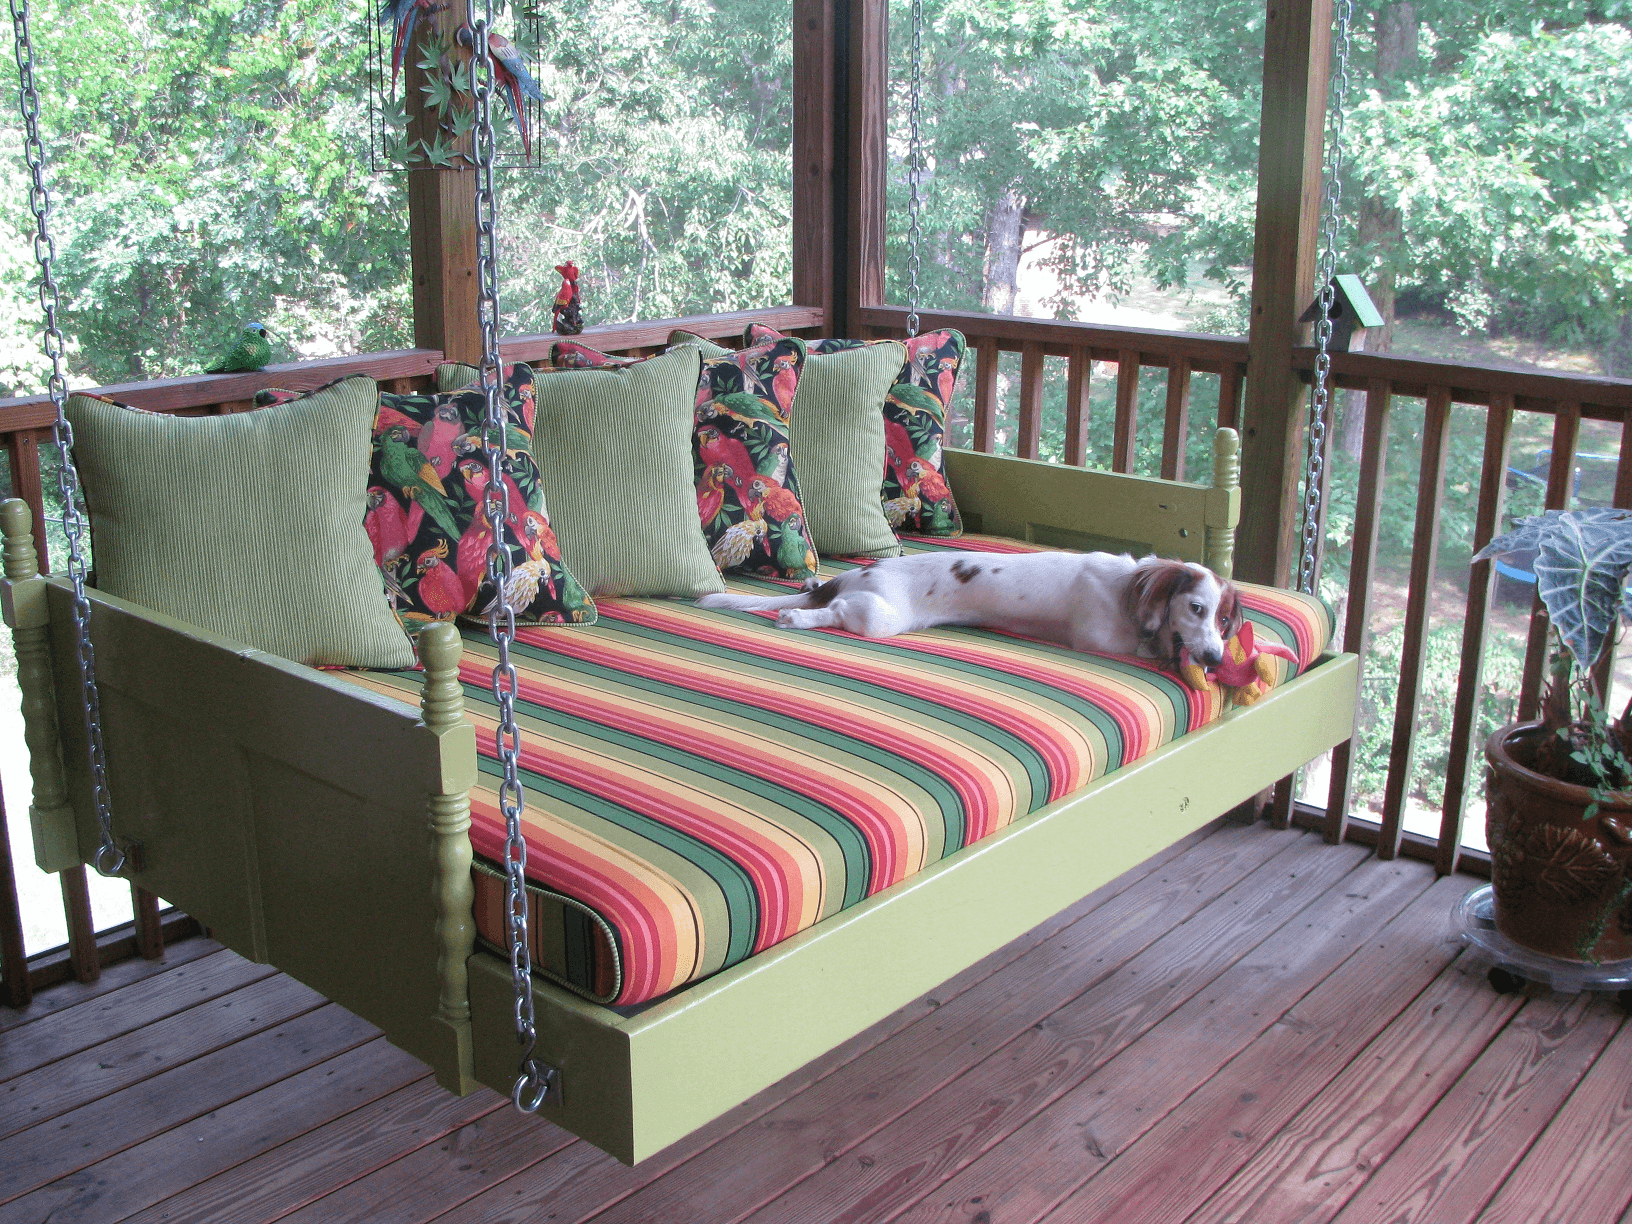 ADD BED AND PILLOW FOR OLD PORCH SWING DECORATION